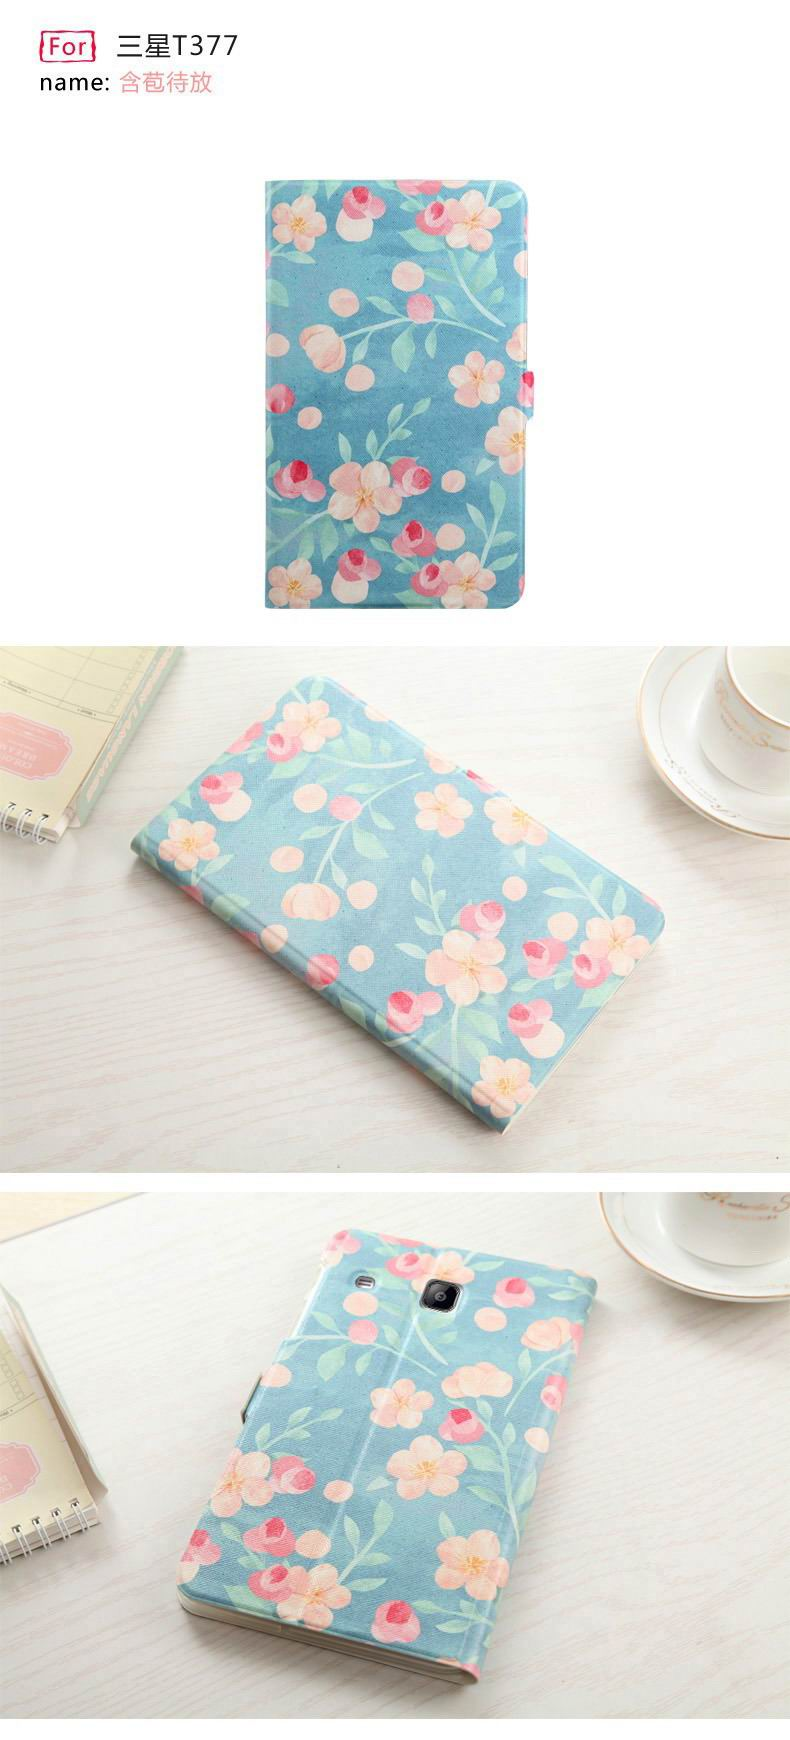 Case with stand and multi painting illustration for Samsung Galaxy Tab E 8.0 T377V